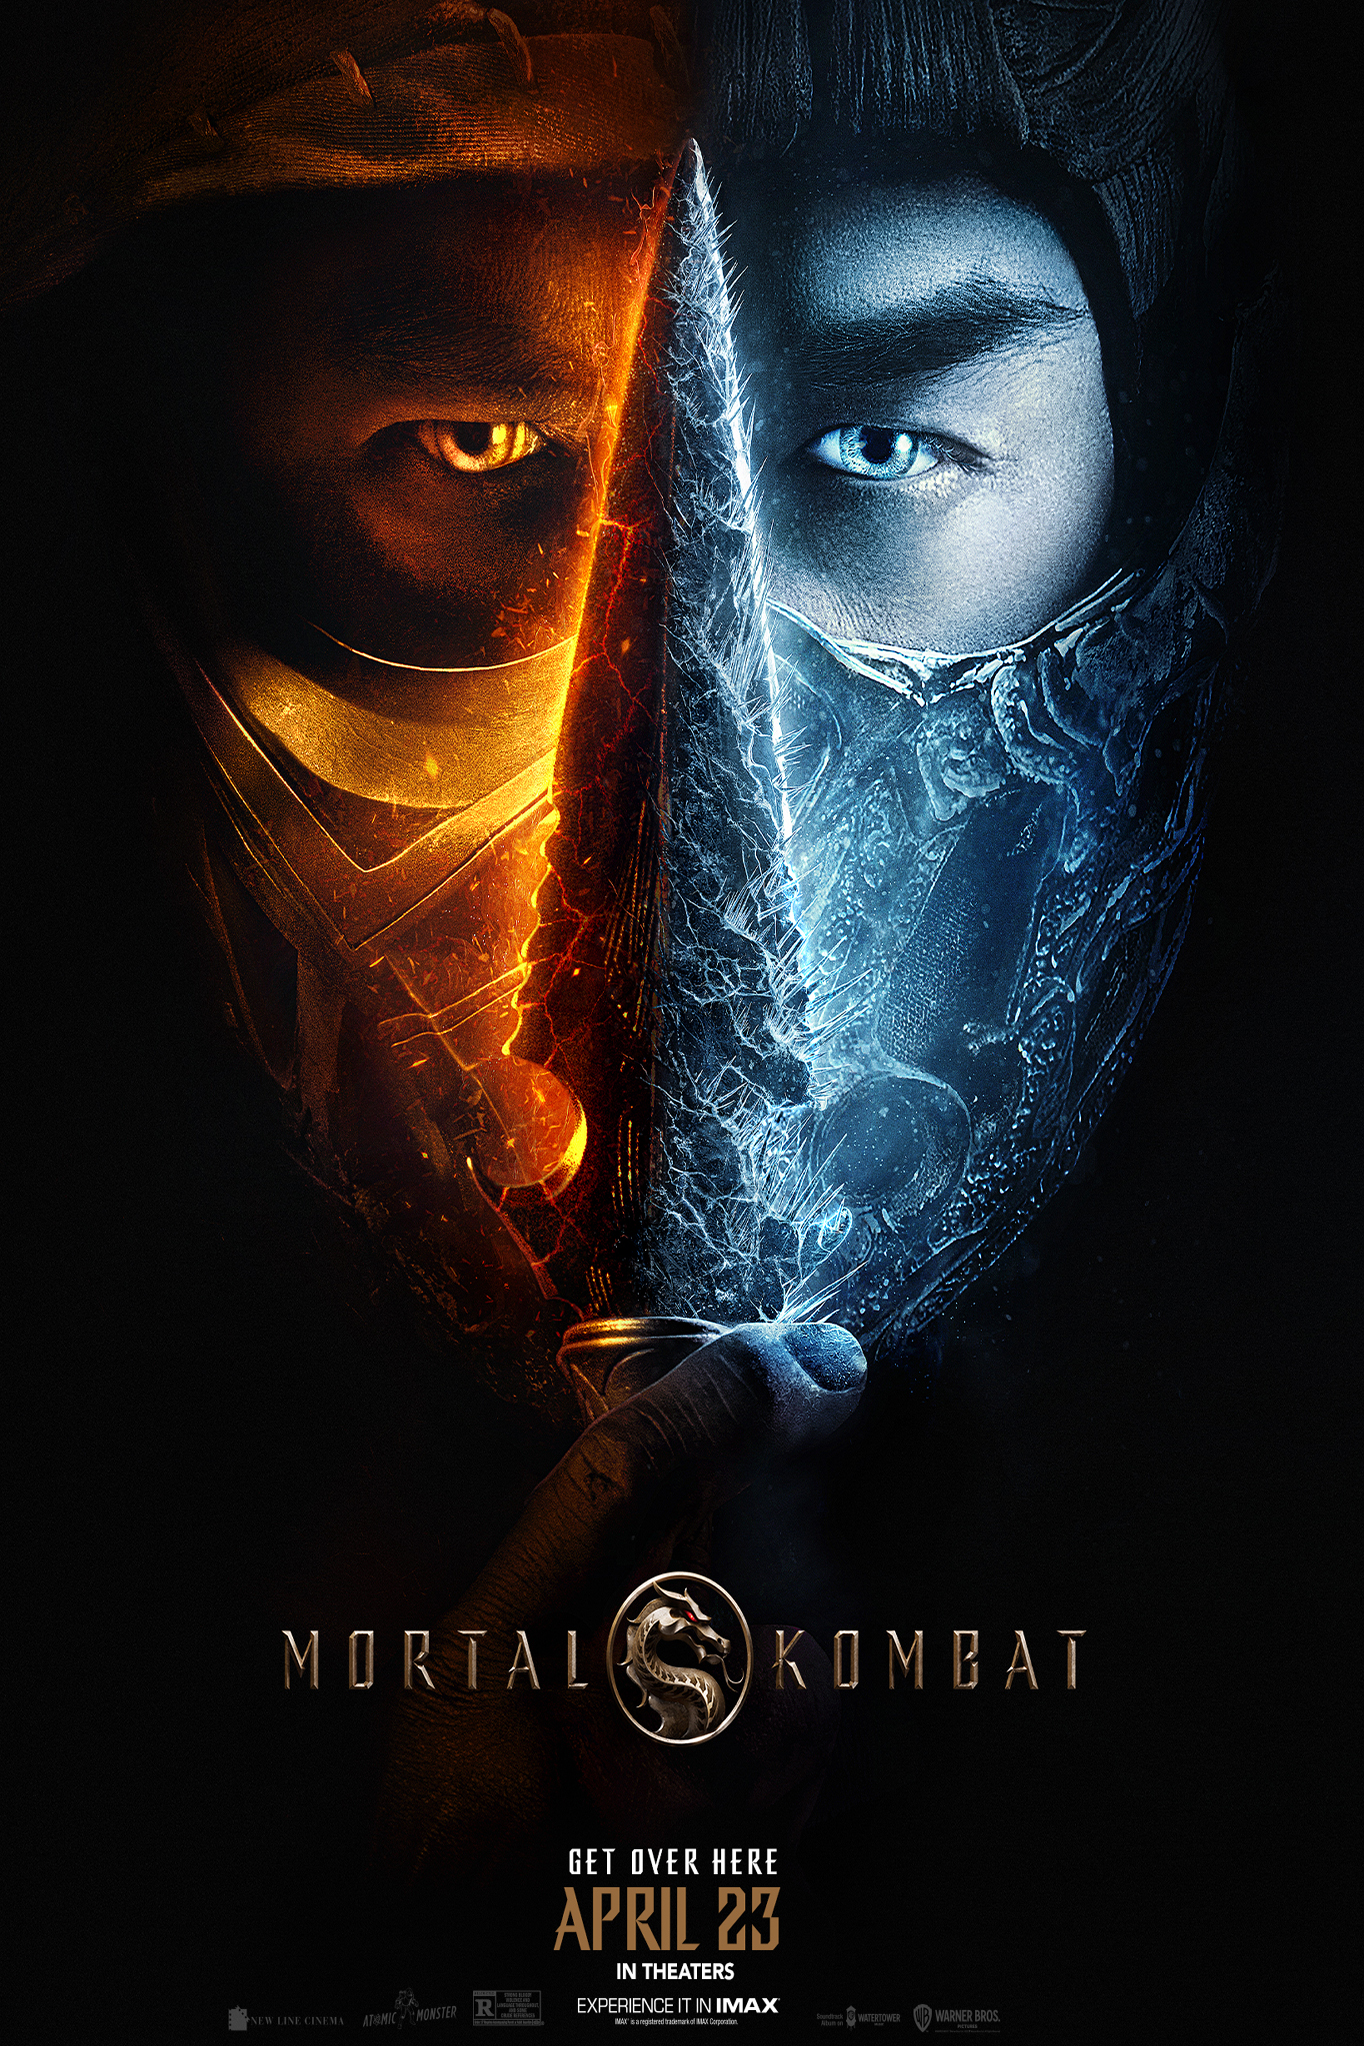 Still of Mortal Kombat